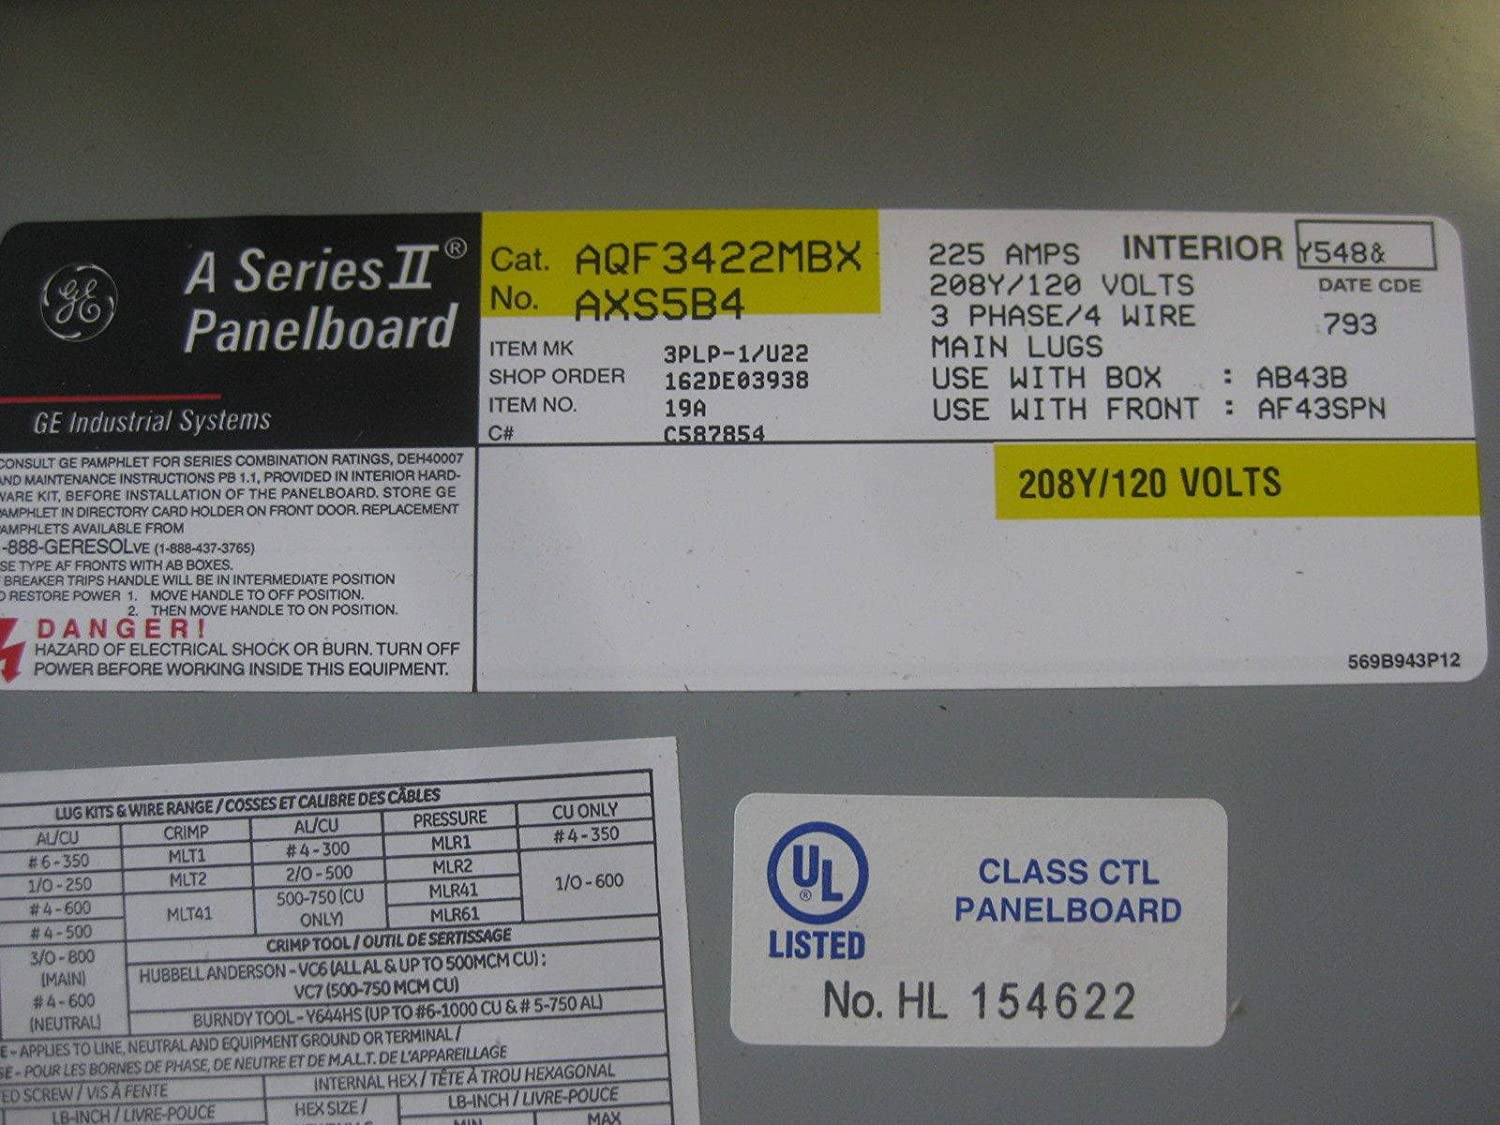 General Electric 225A Breaker Panel 208Y/120 V 3P4W 225 A